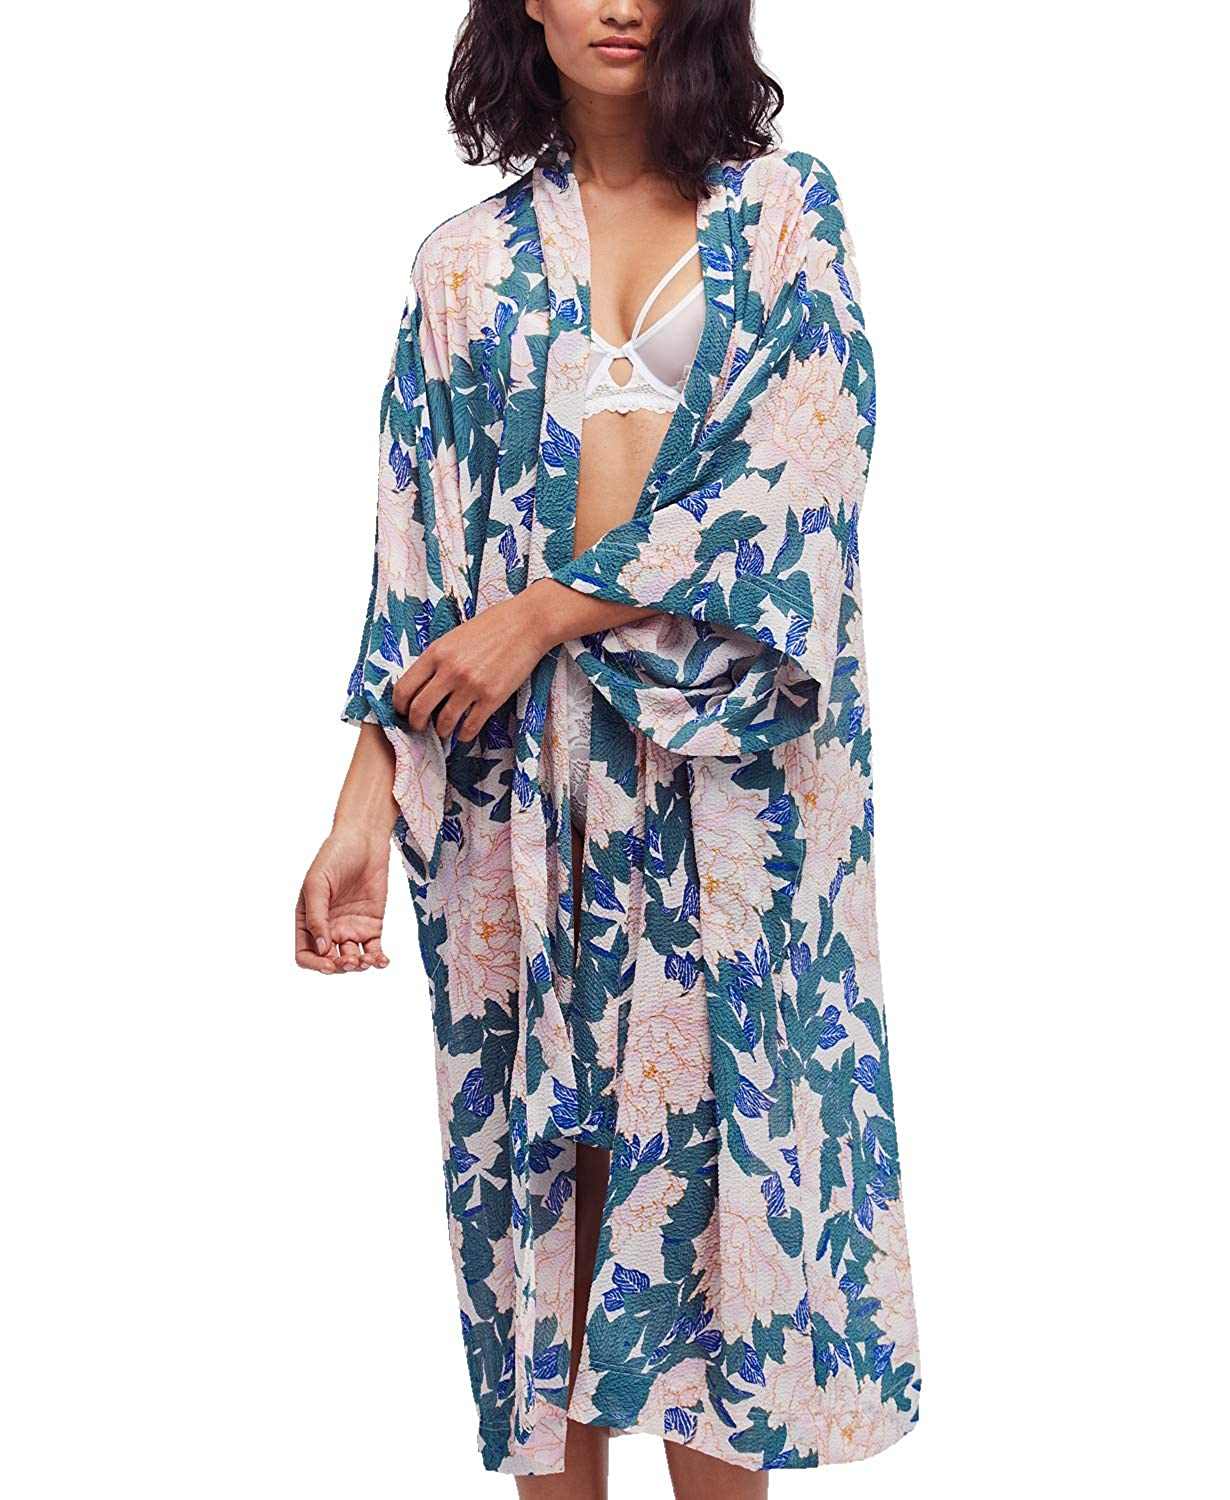 Free People Womens Floral Print Sheer Kimono Swim Cover-Up Ivory M at  Amazon Women s Clothing store  0c5b5da8e